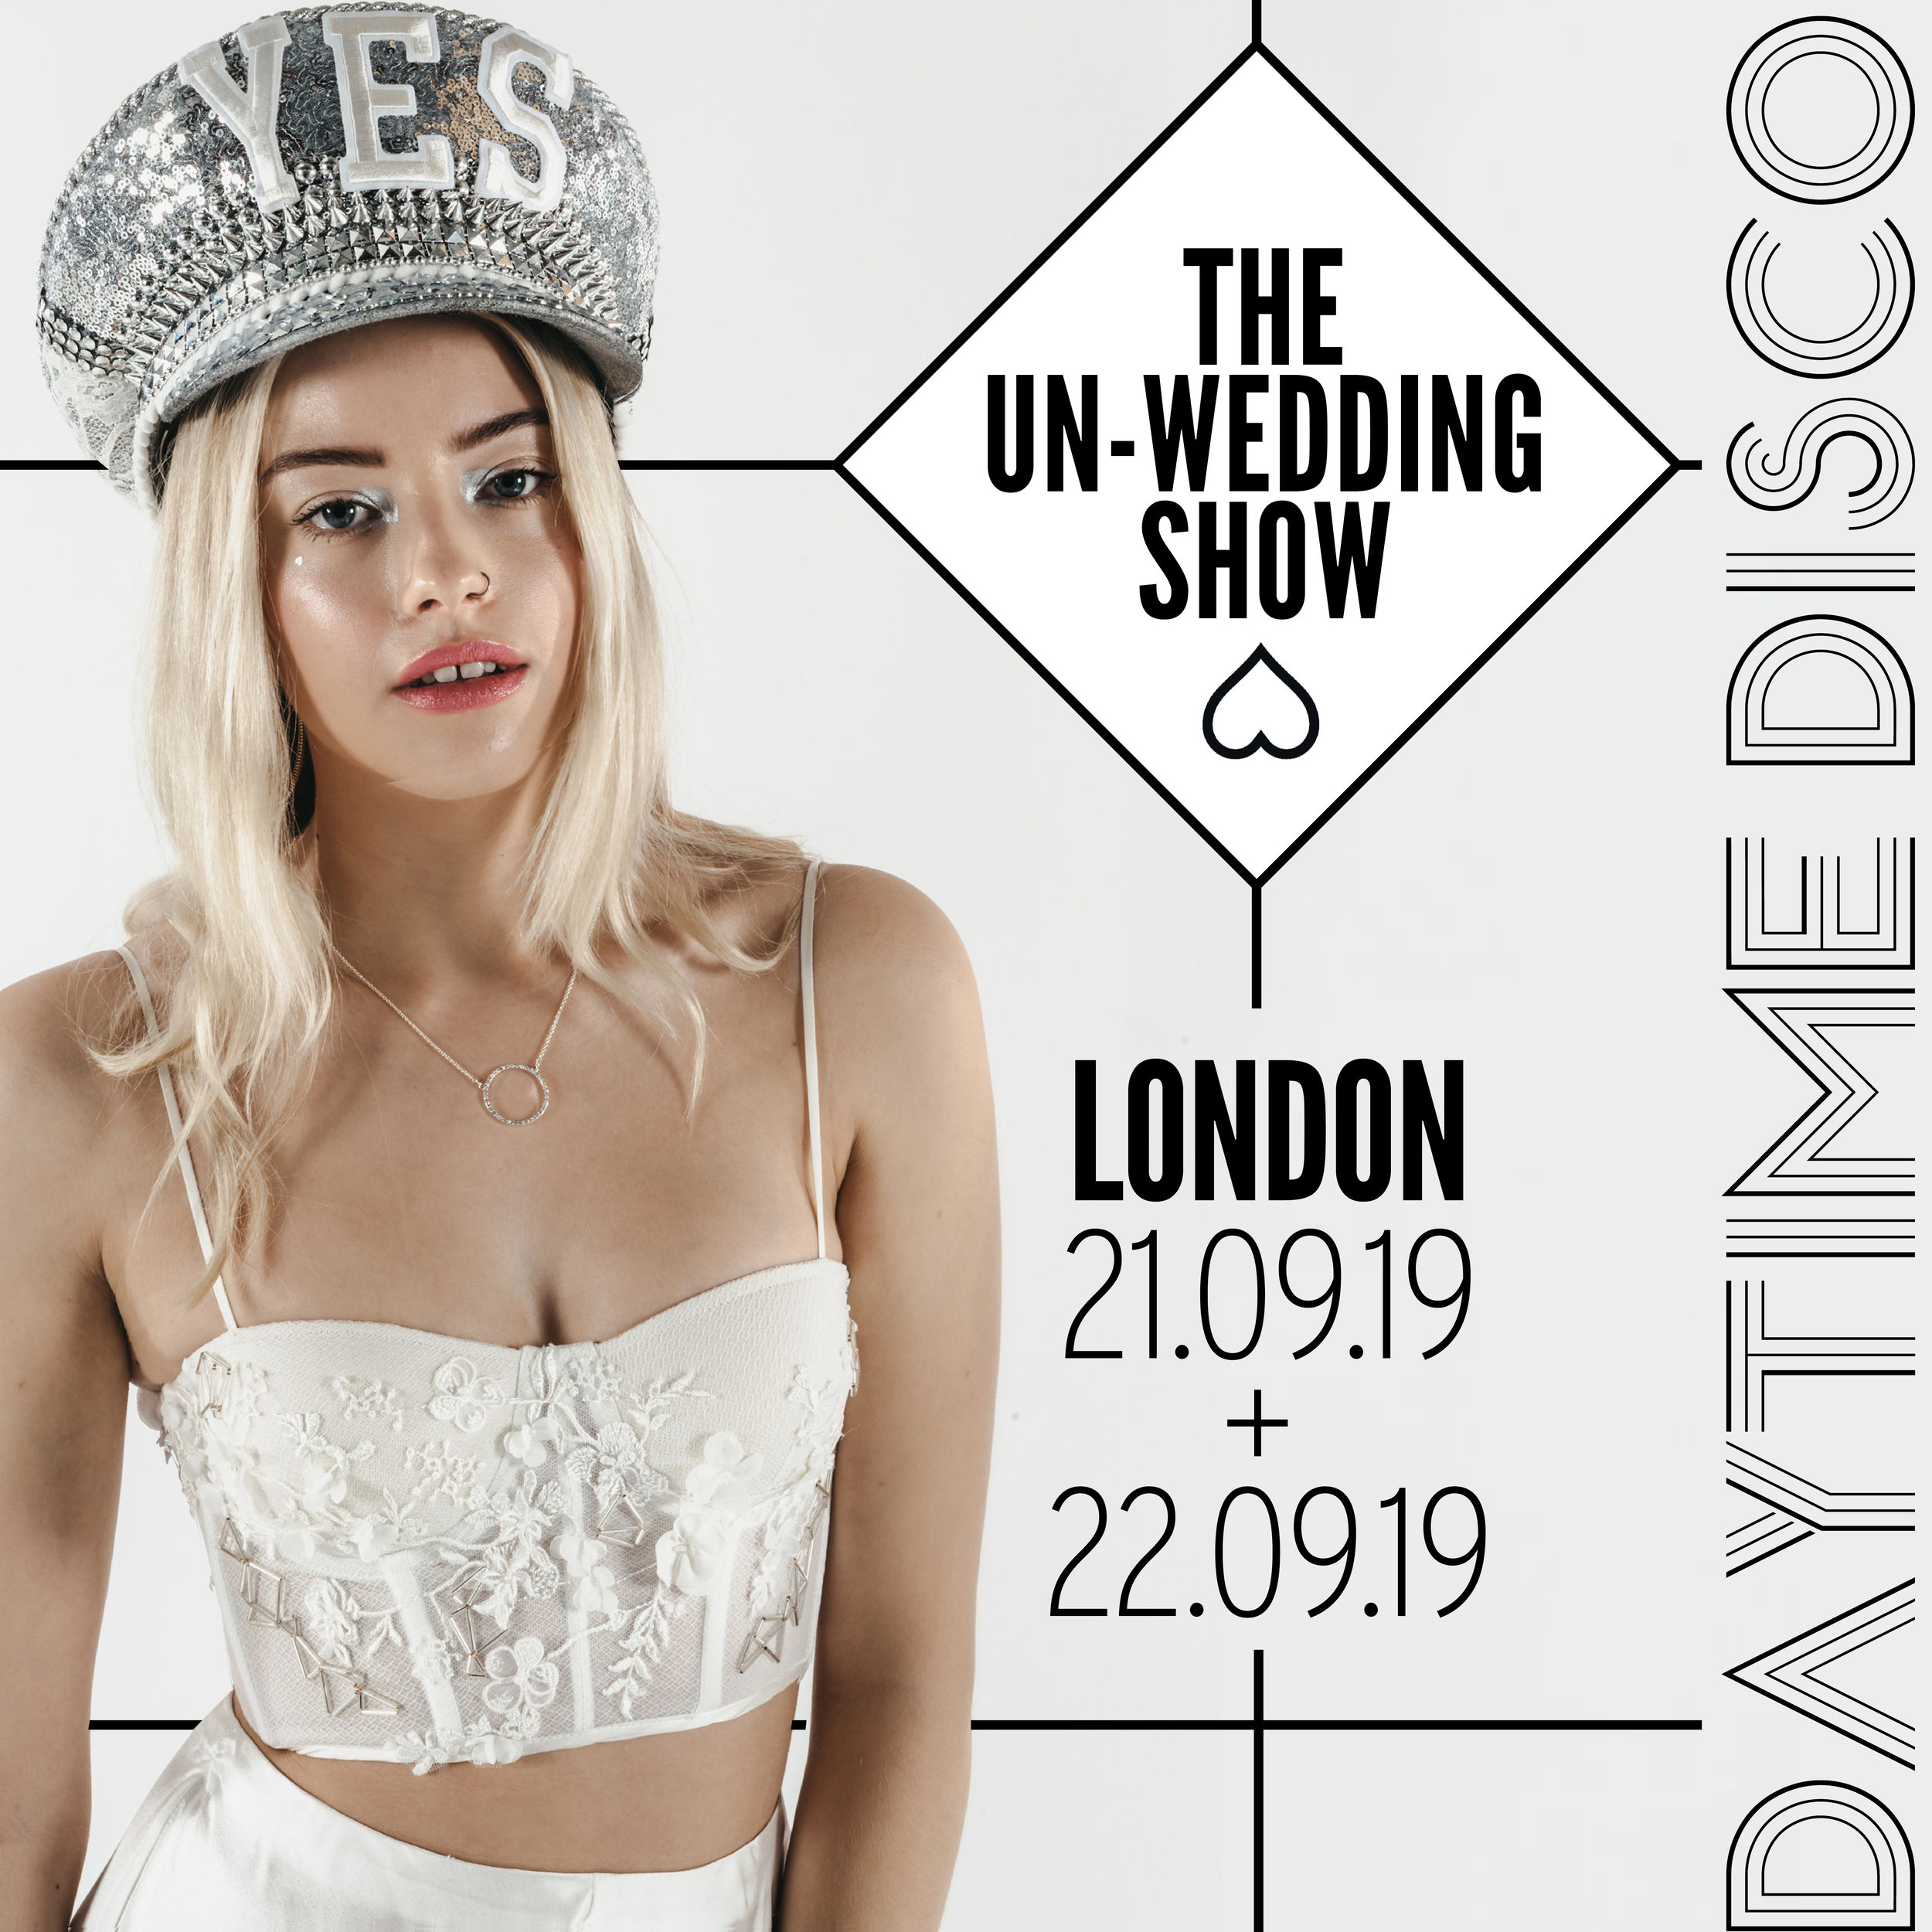 THE UN-WEDDING SHOW LONDON